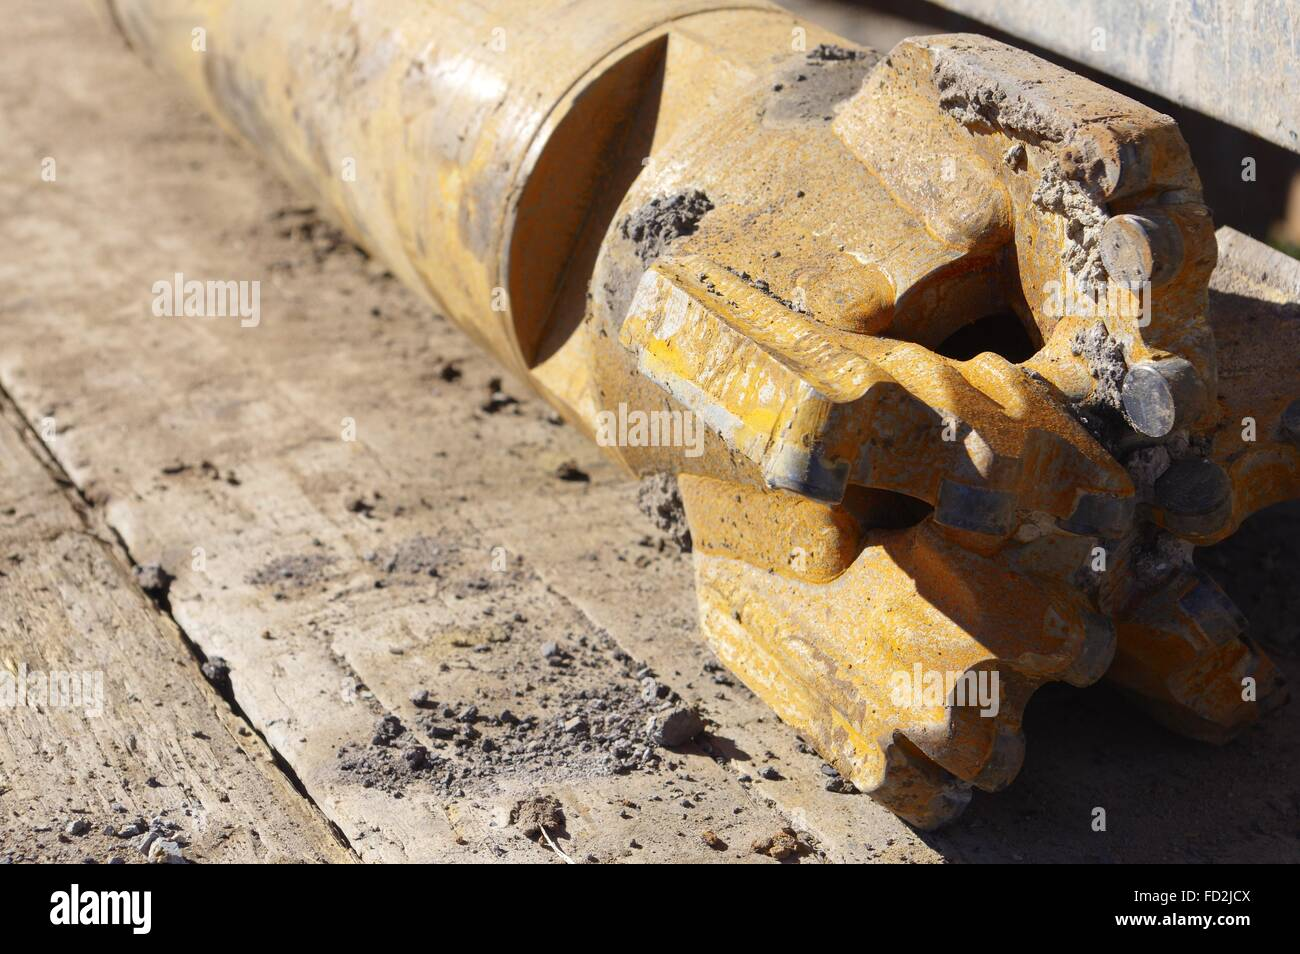 Close-up of used drilling bit on the back of a drill rig. - Stock Image